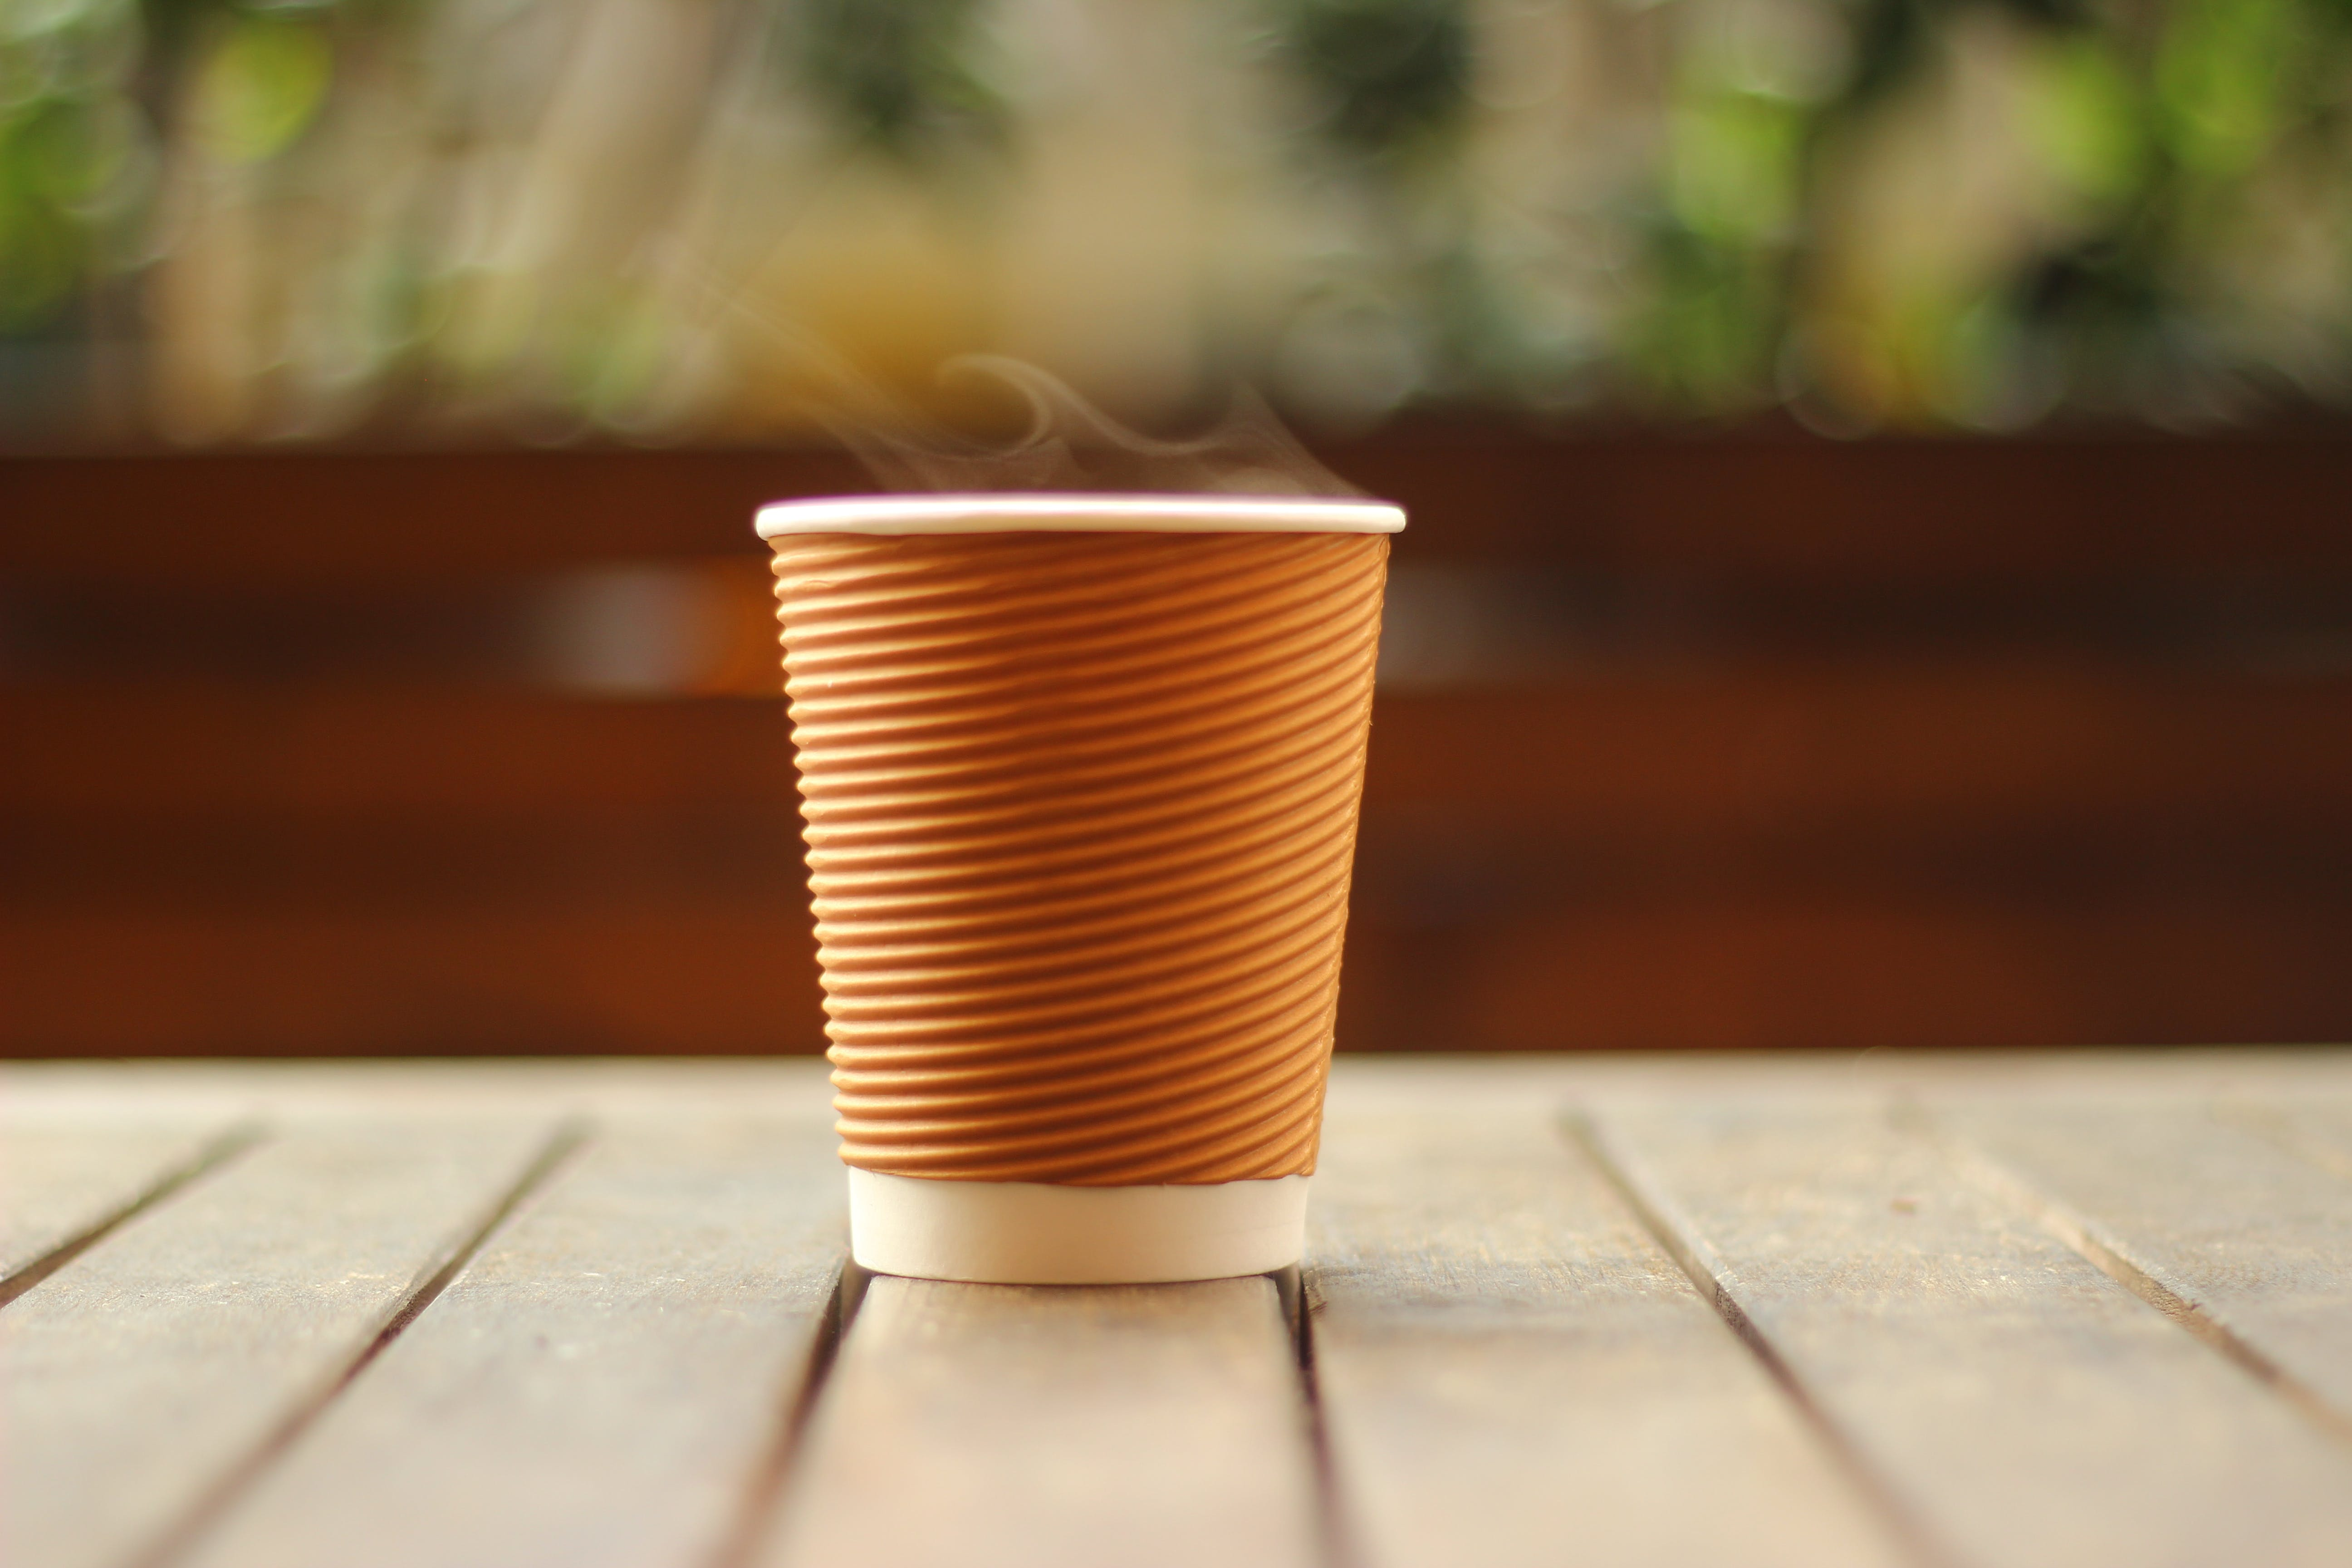 Selective Focus Photo of White and Brown Disposable Cup